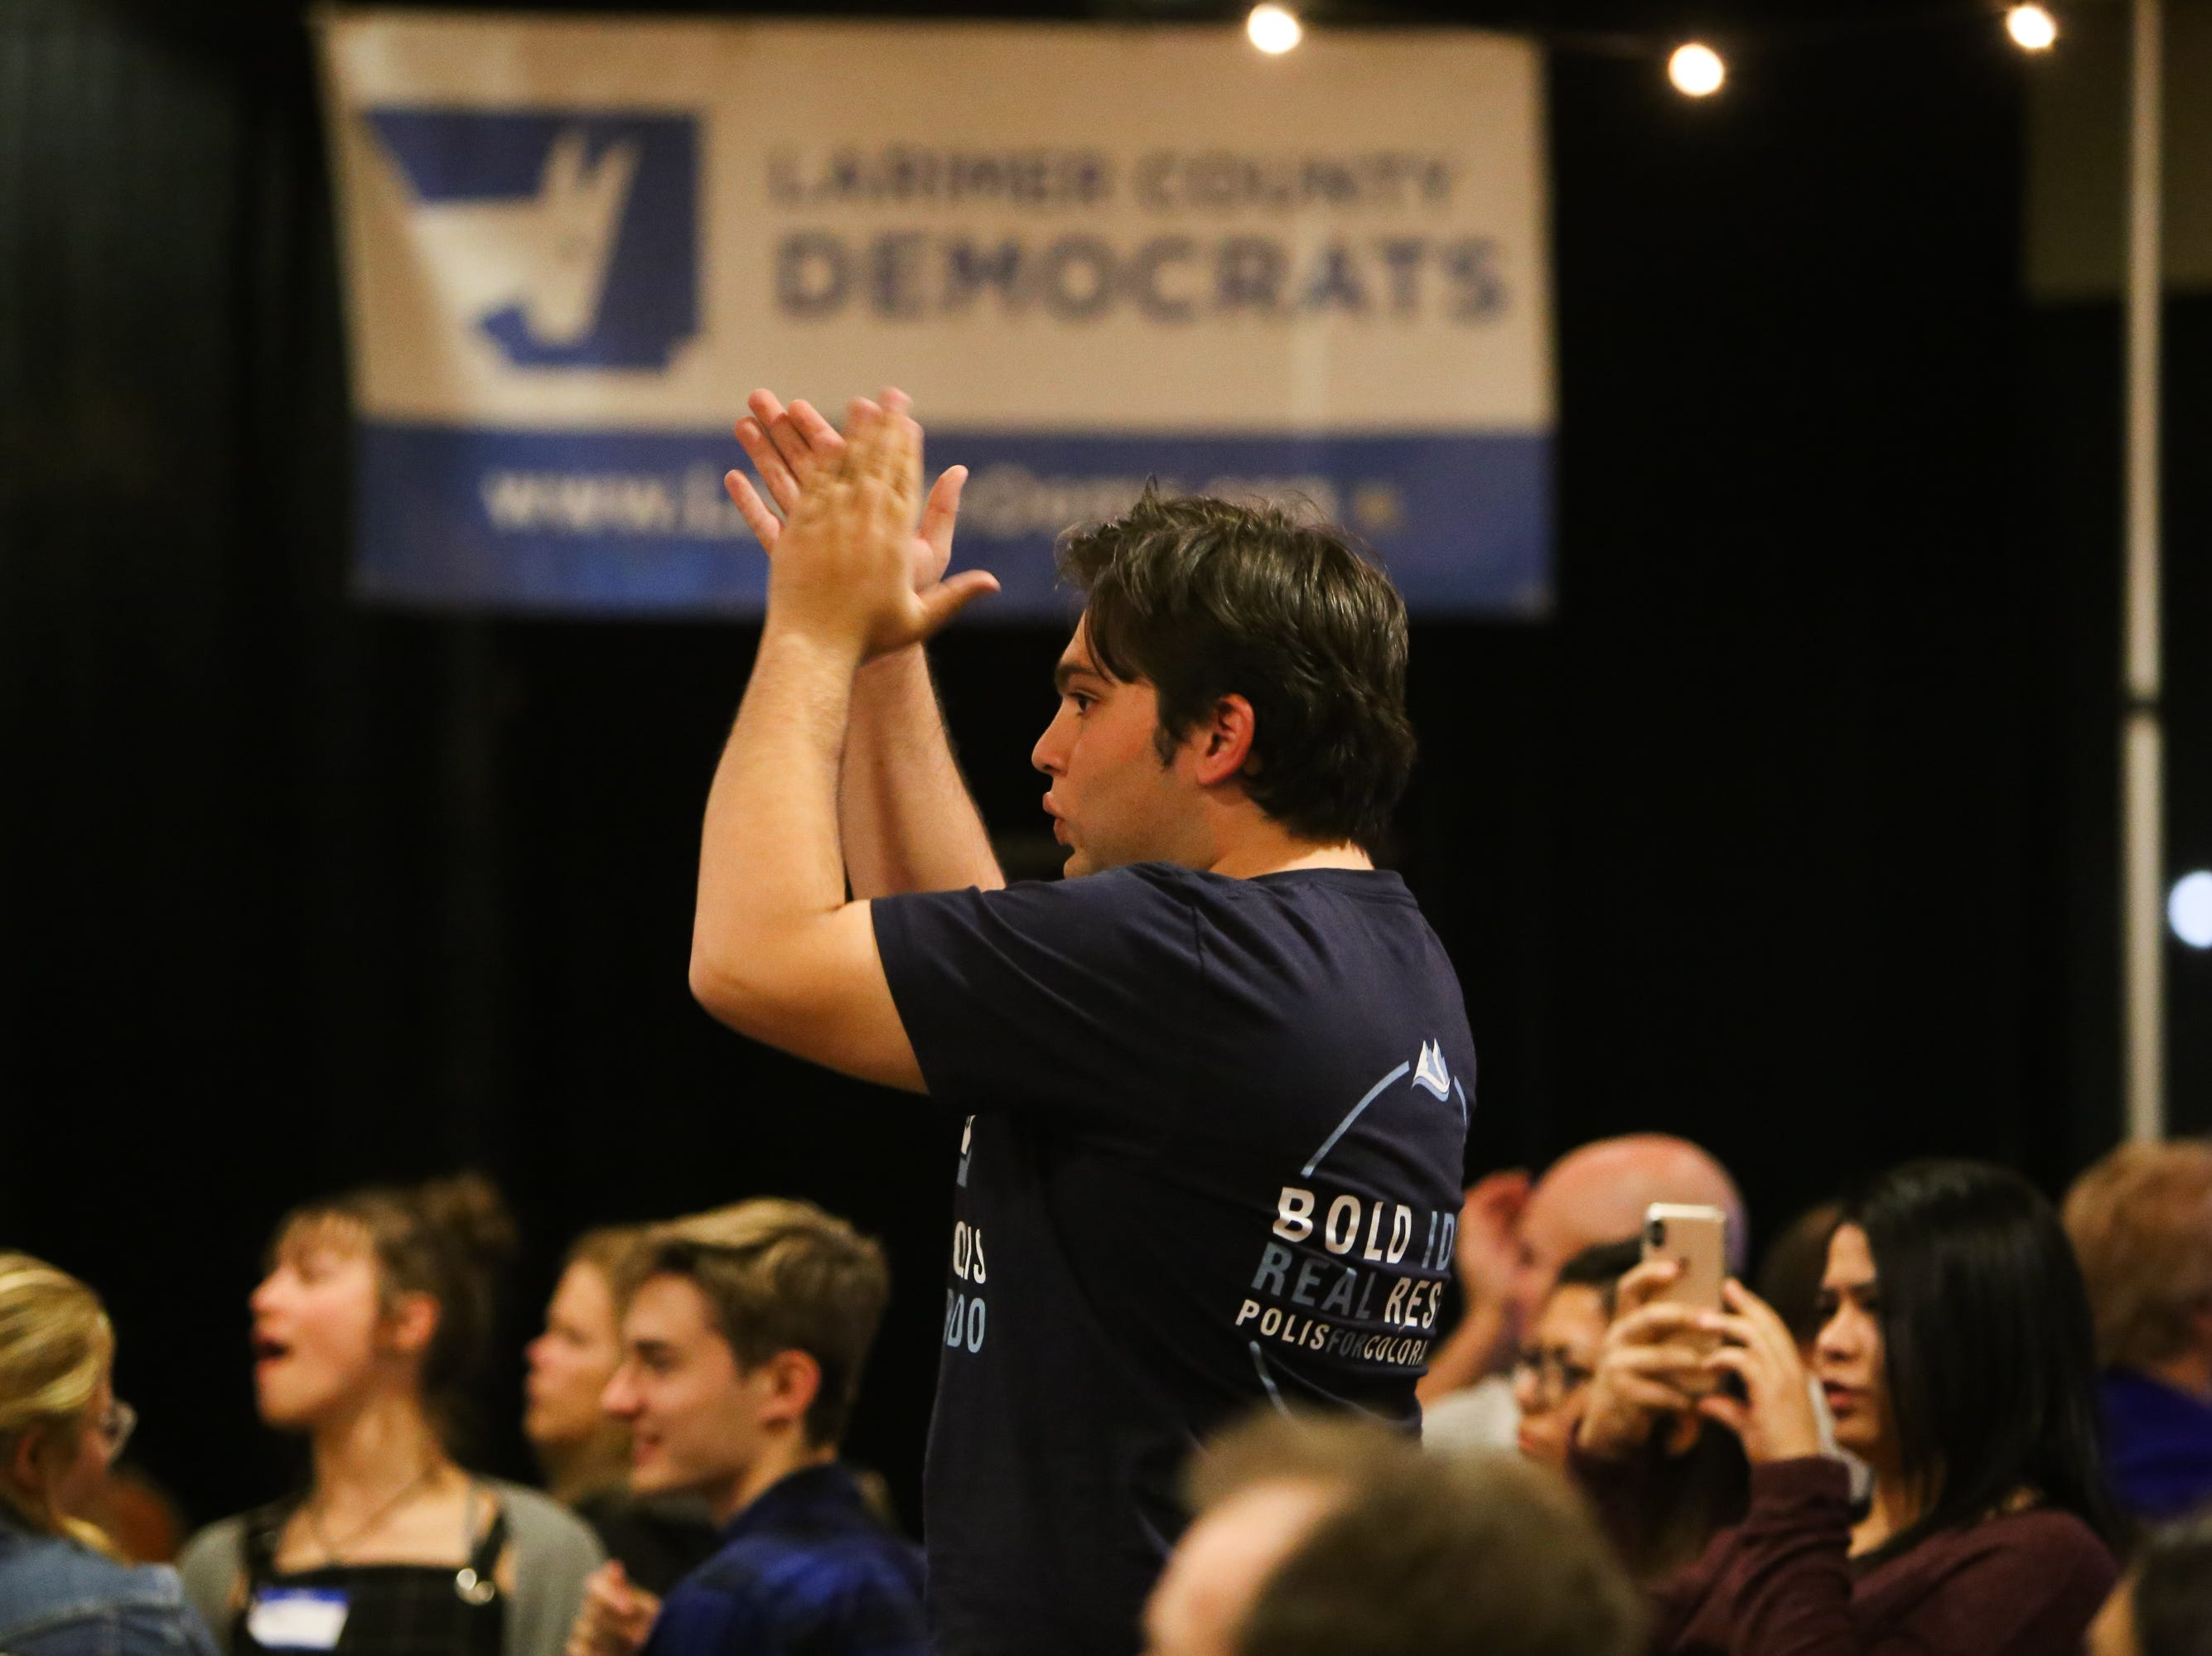 Thelanious Rider stands up and cheers during during the Democratic watch party at the Fort Collins Marriott .